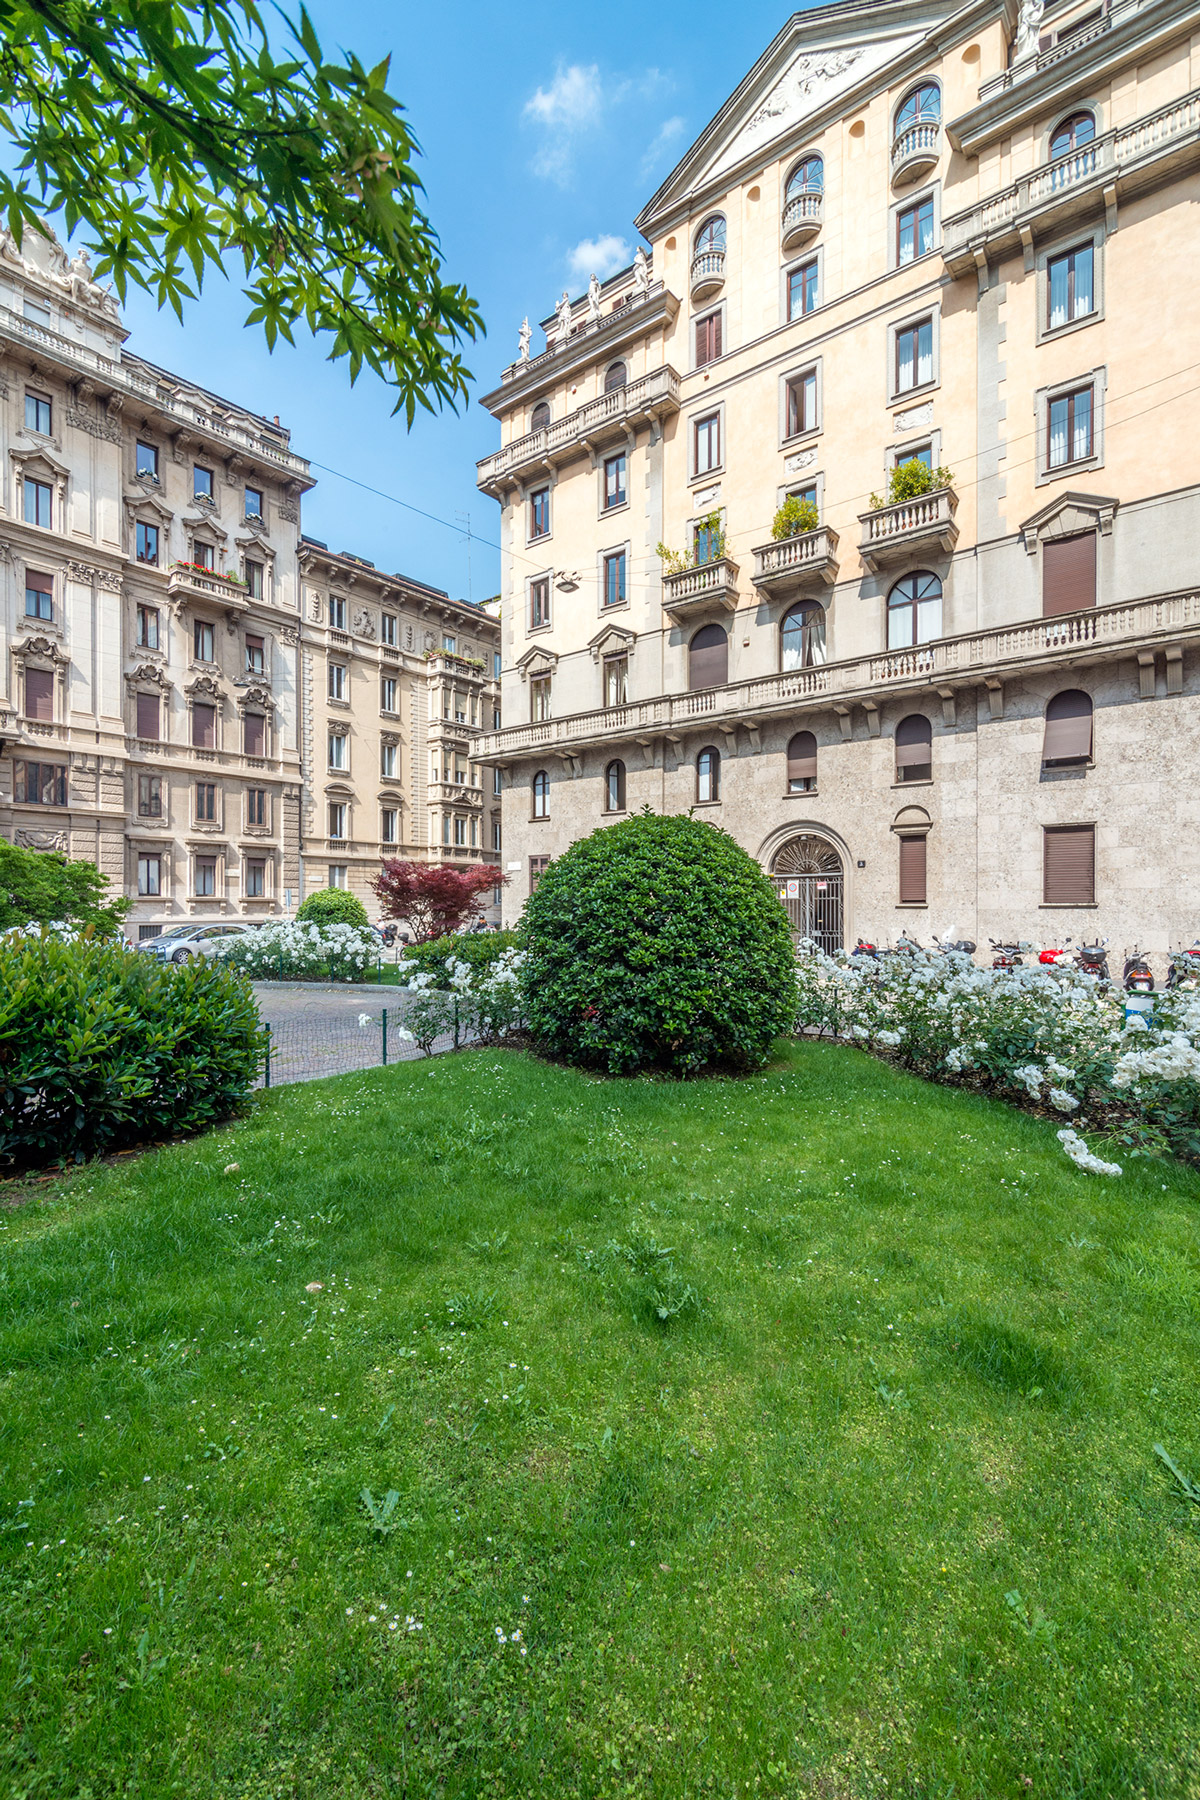 Additional photo for property listing at Panoramic apartment in historical building Piazza Duse Other Milan, Milan 20100 Italien